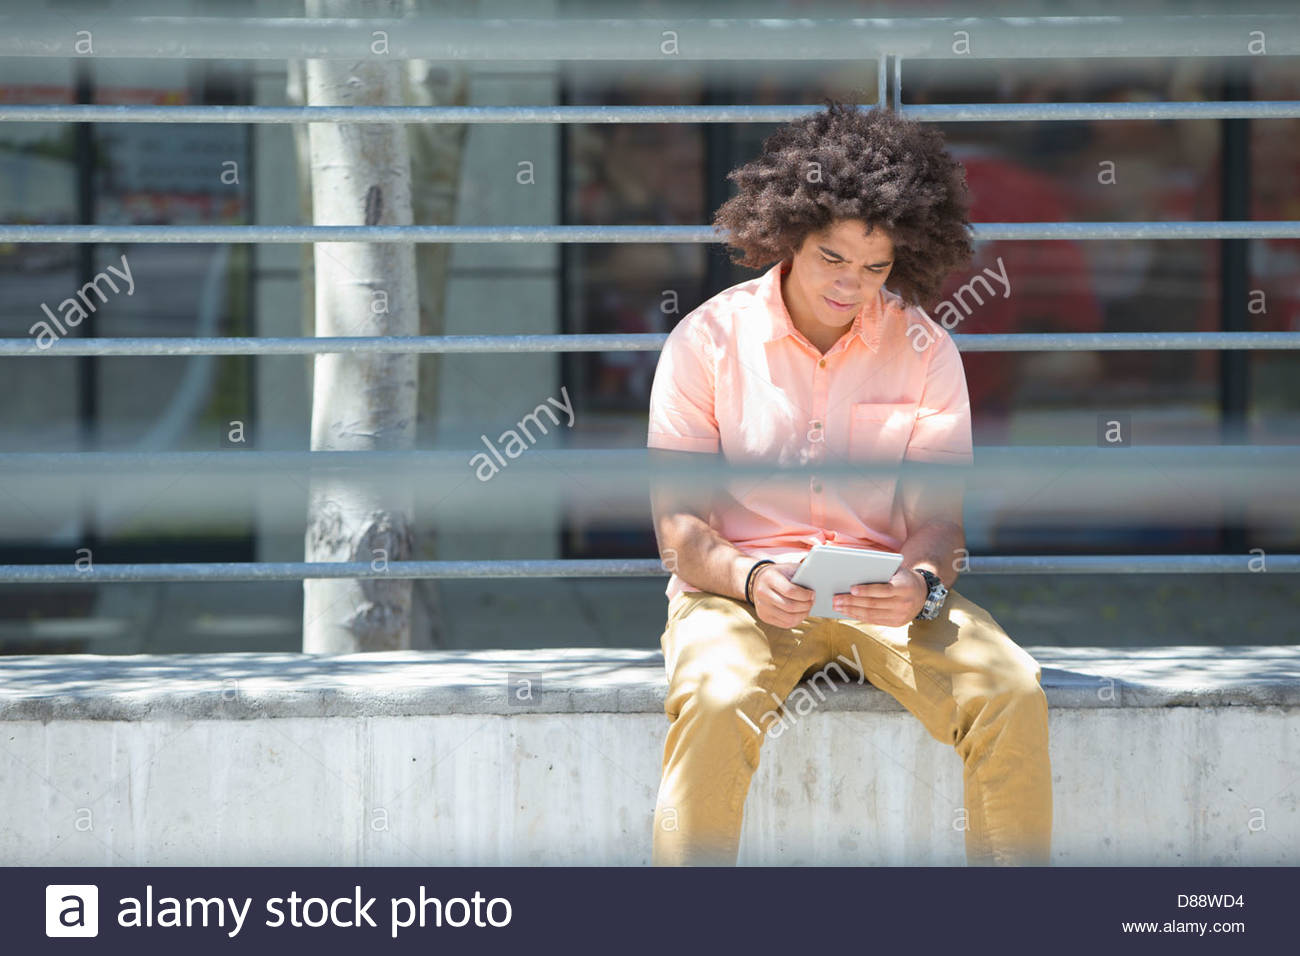 Young man using digital tablet in city Photo Stock